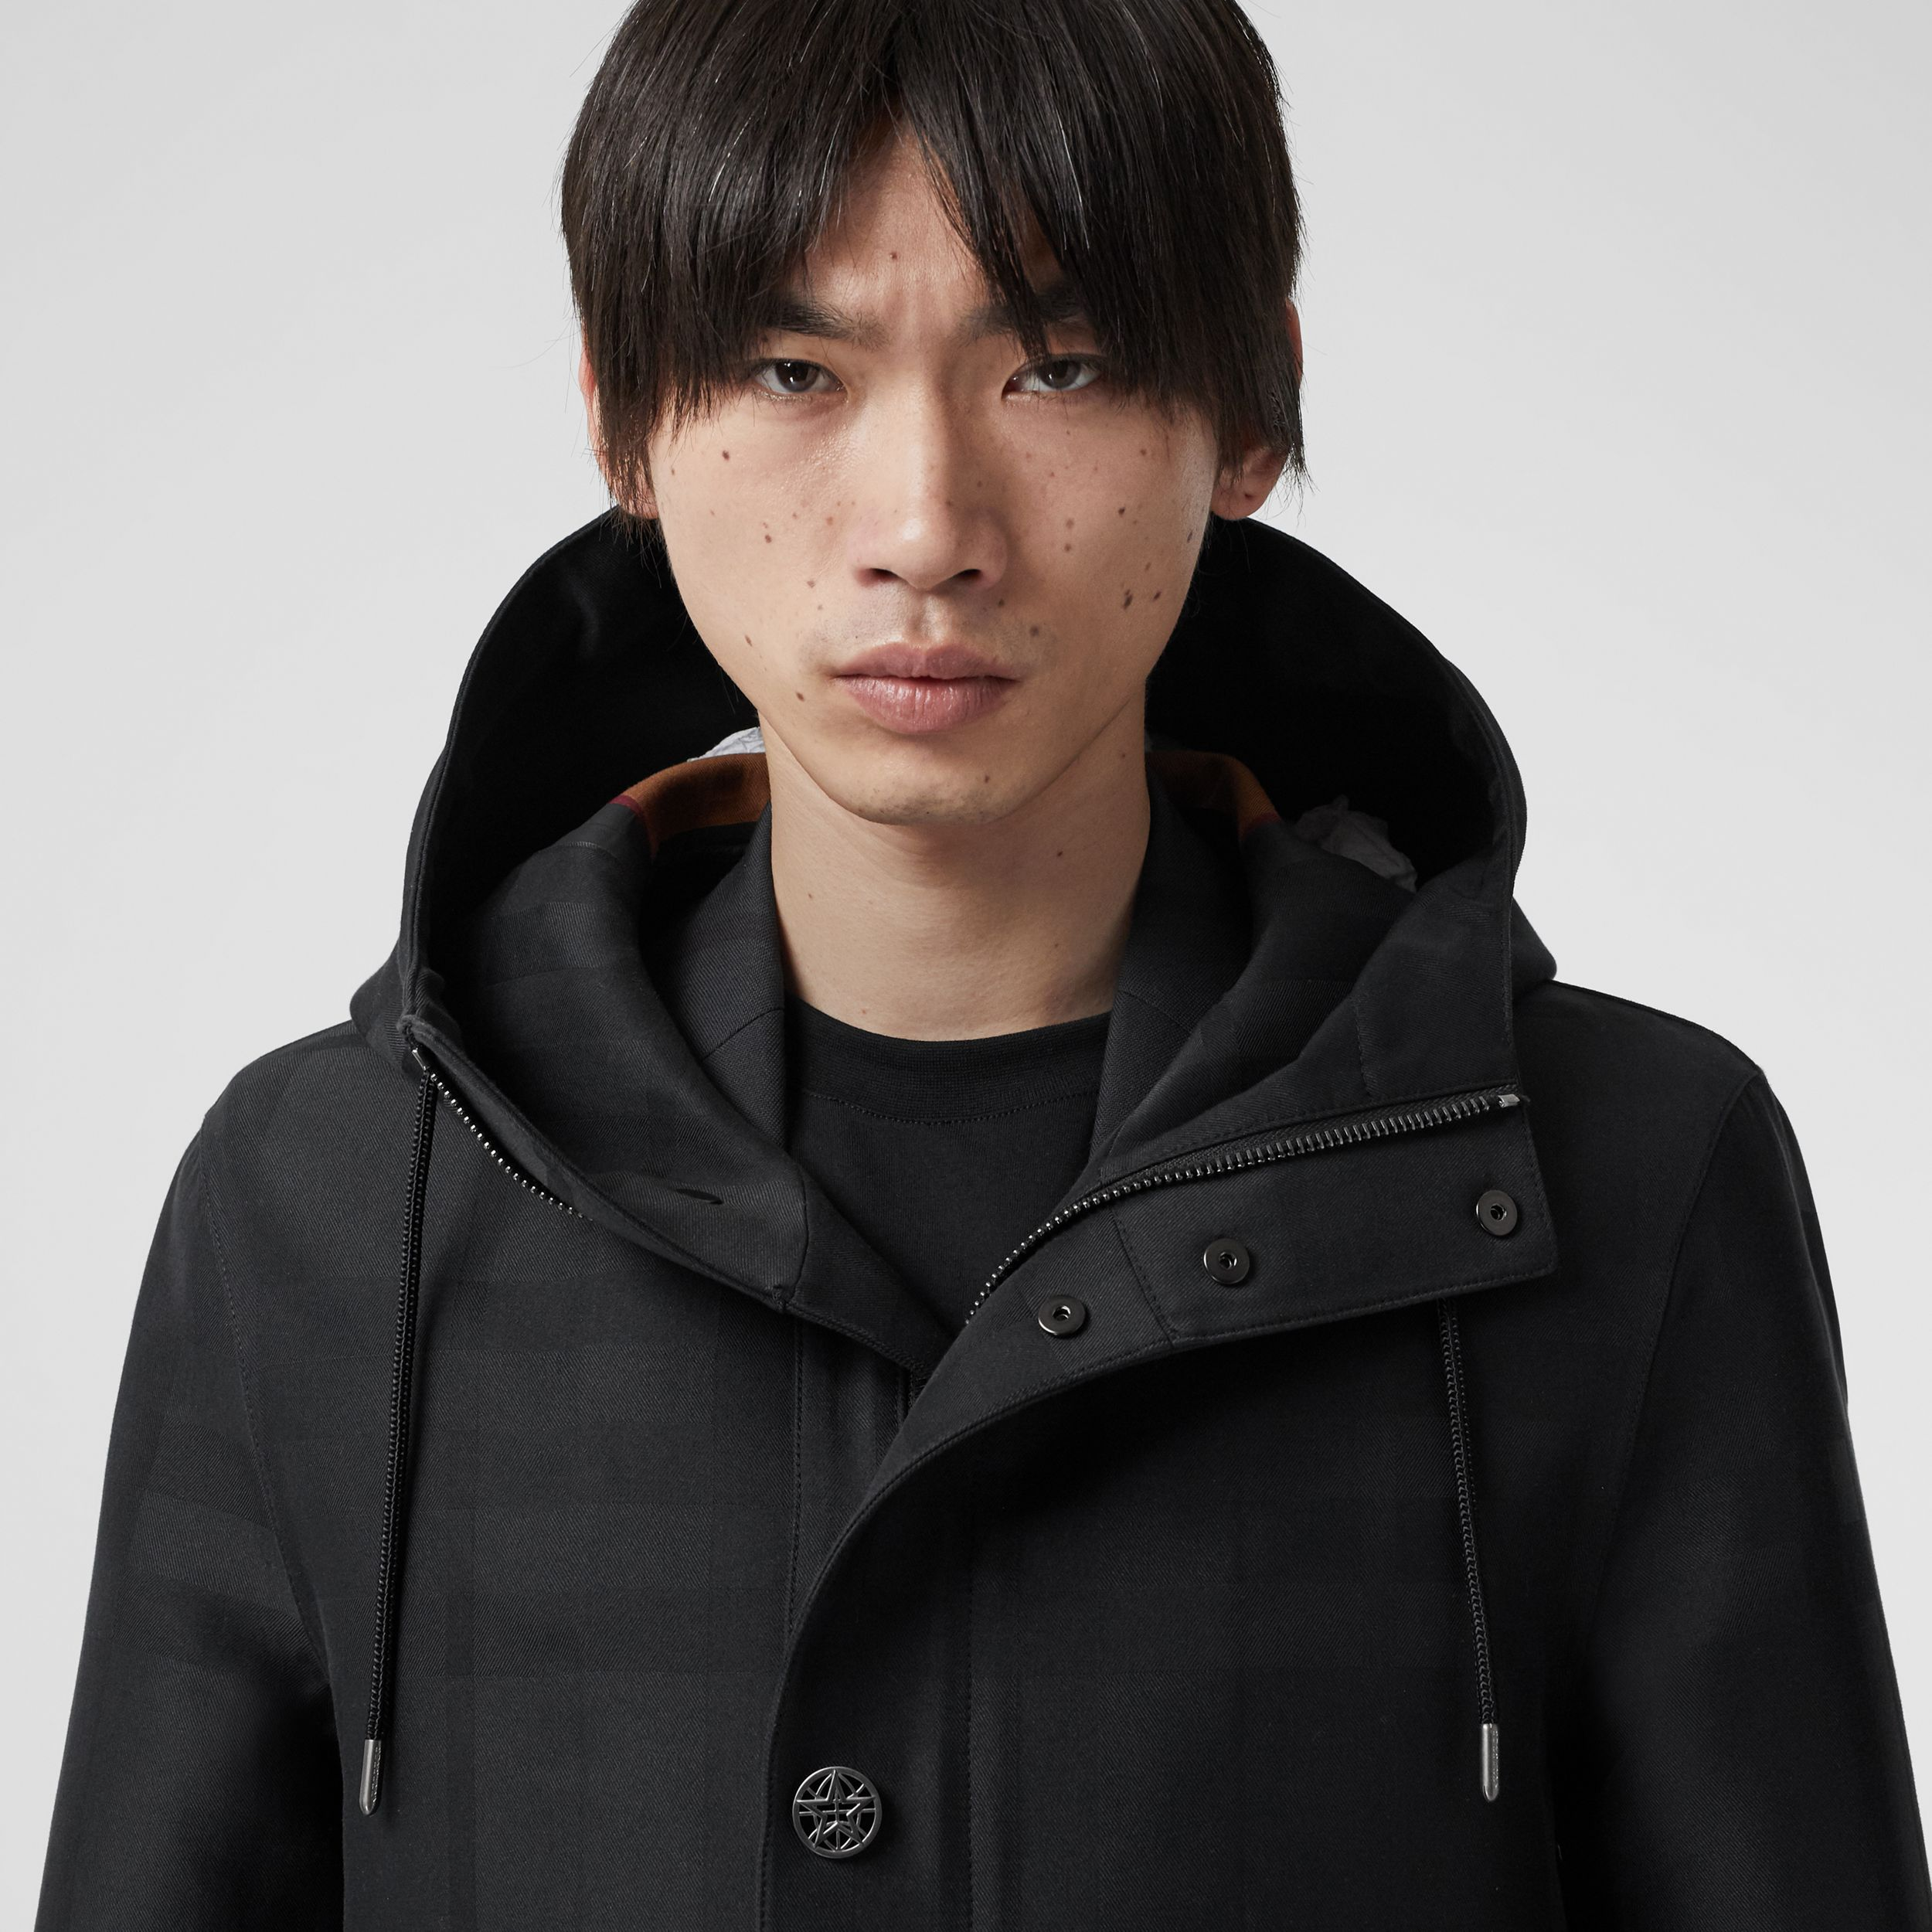 Globe Graphic Detail Check Technical Cotton Coat in Black - Men | Burberry - 2